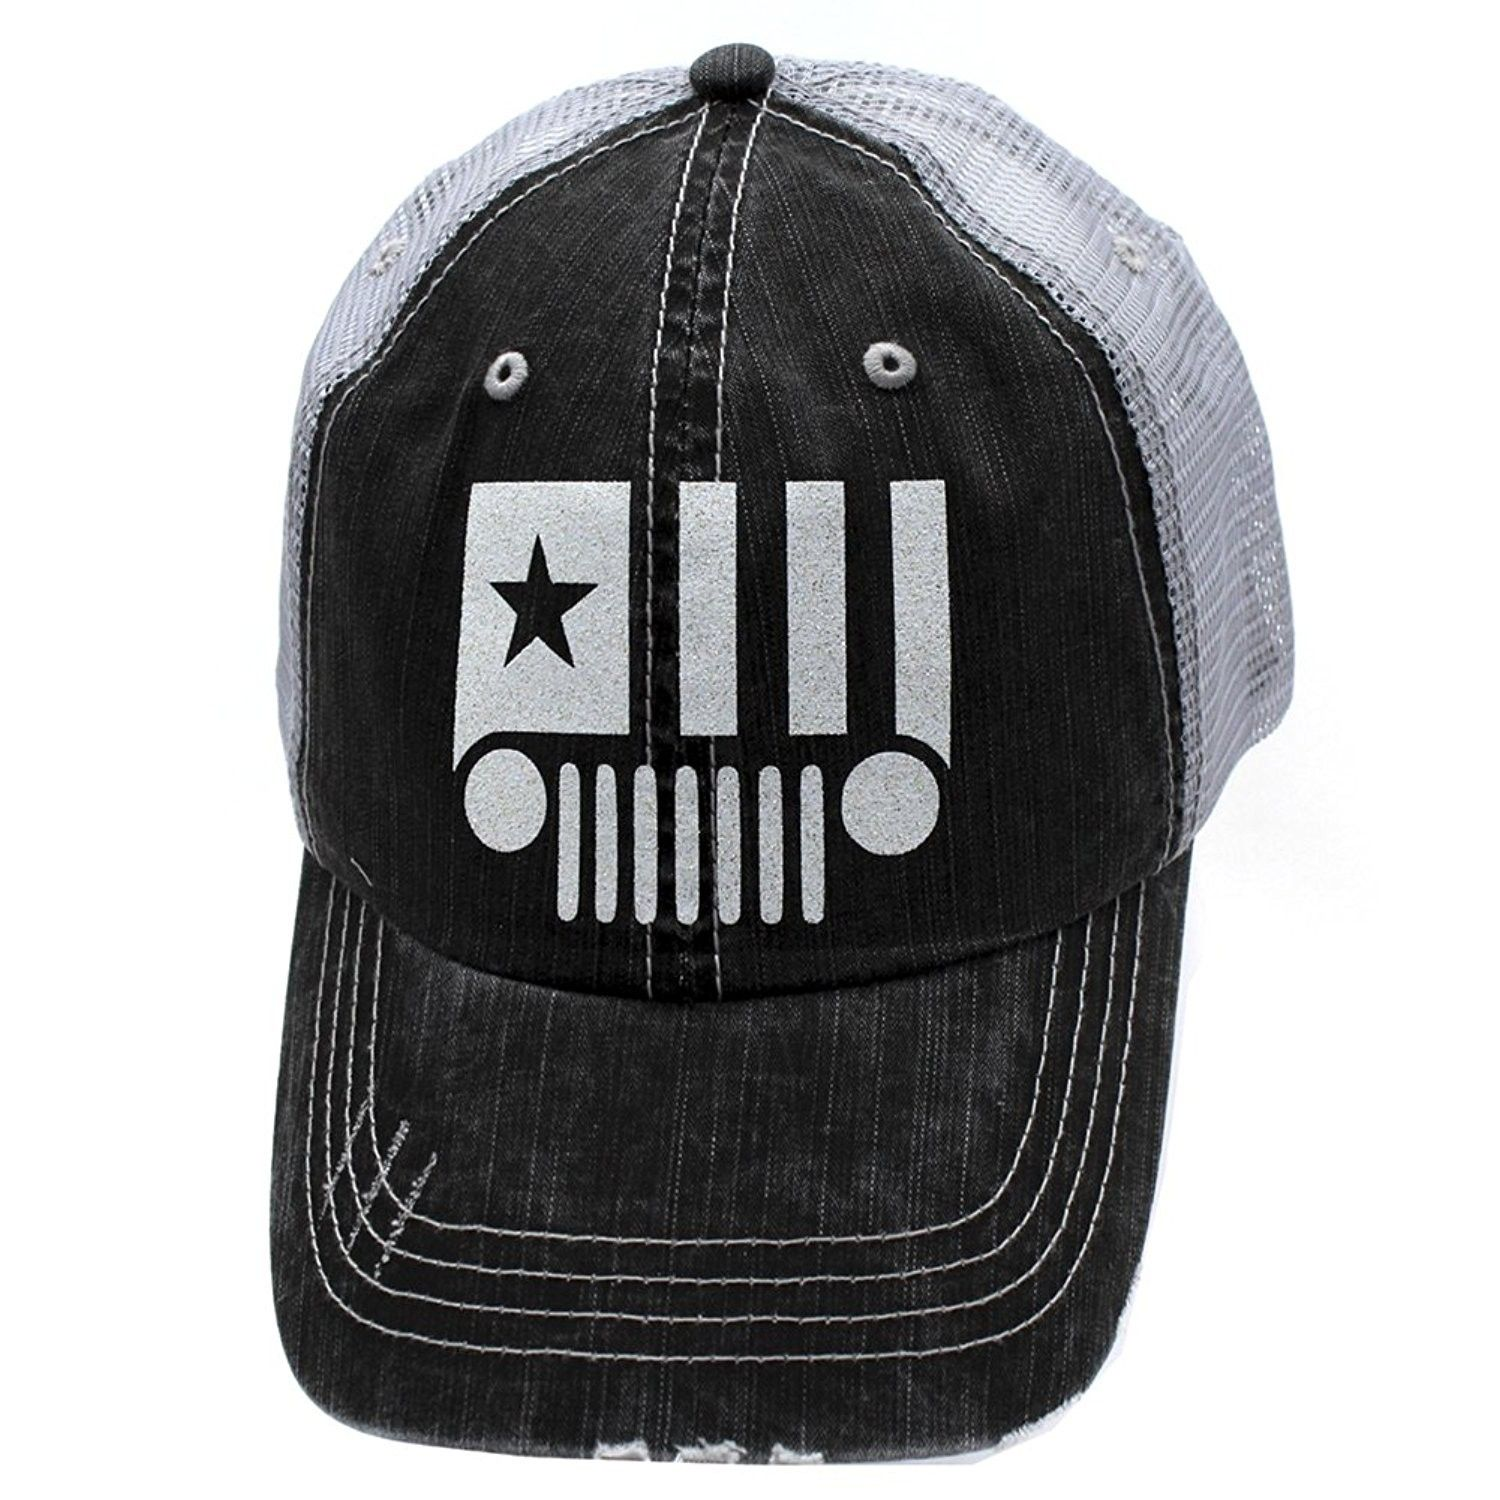 Jeep Starter Glittering Trucker Style Cap Hat Grey Grey White Cu12nh7cgxh Caps Hats Hat Designs Hats For Men